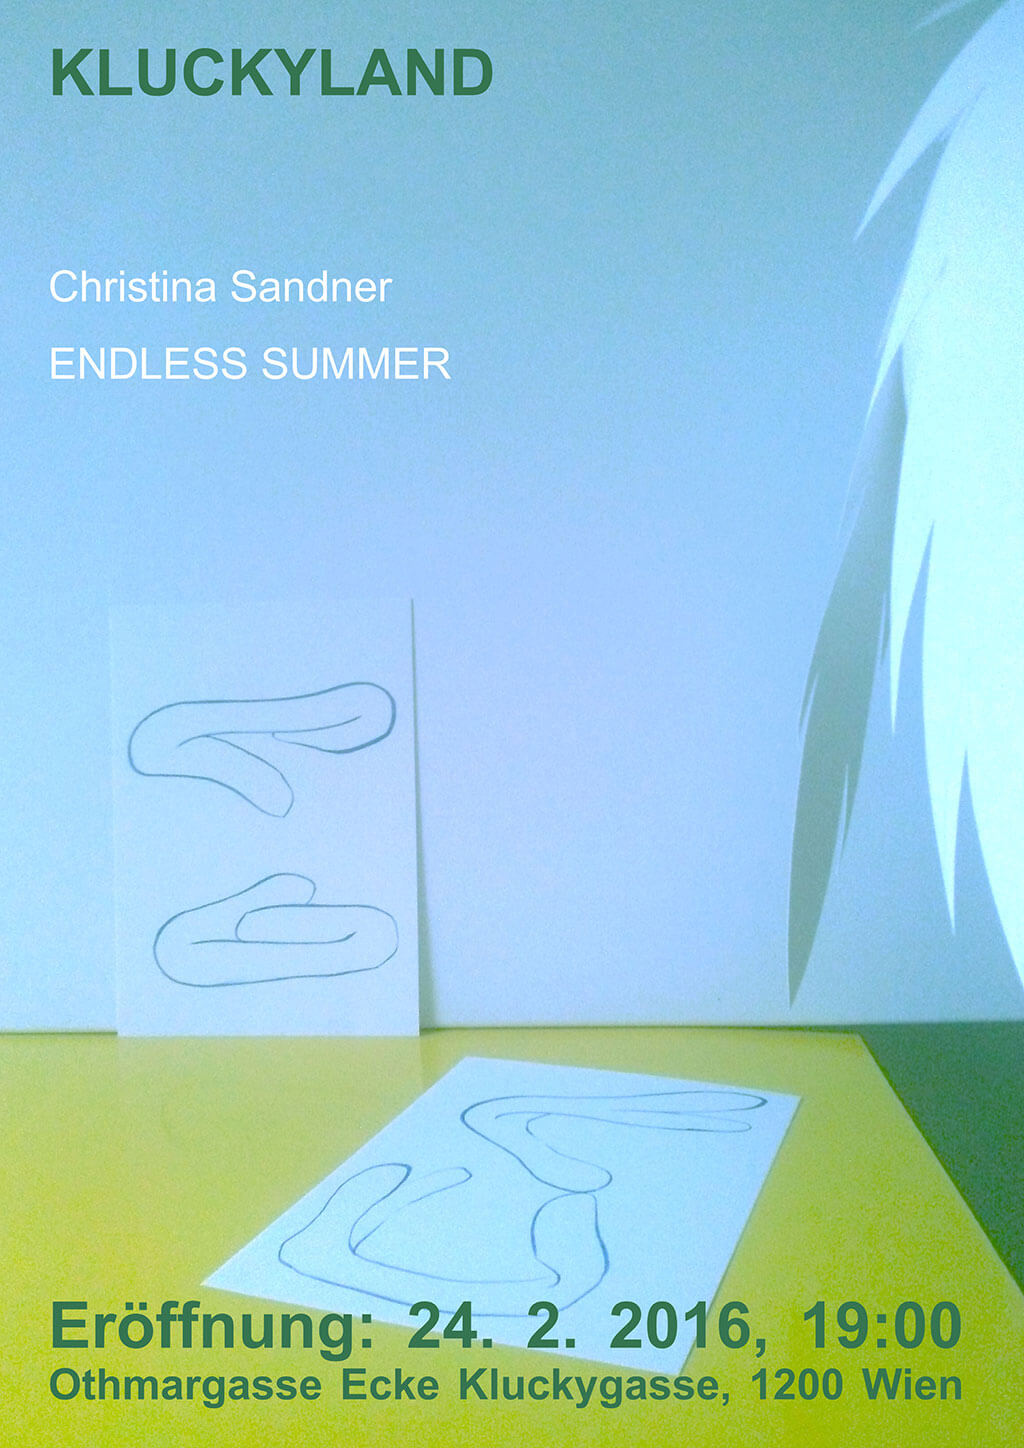 Poster Kluckyland: Christina Sandner: ENDLESS SUMMER